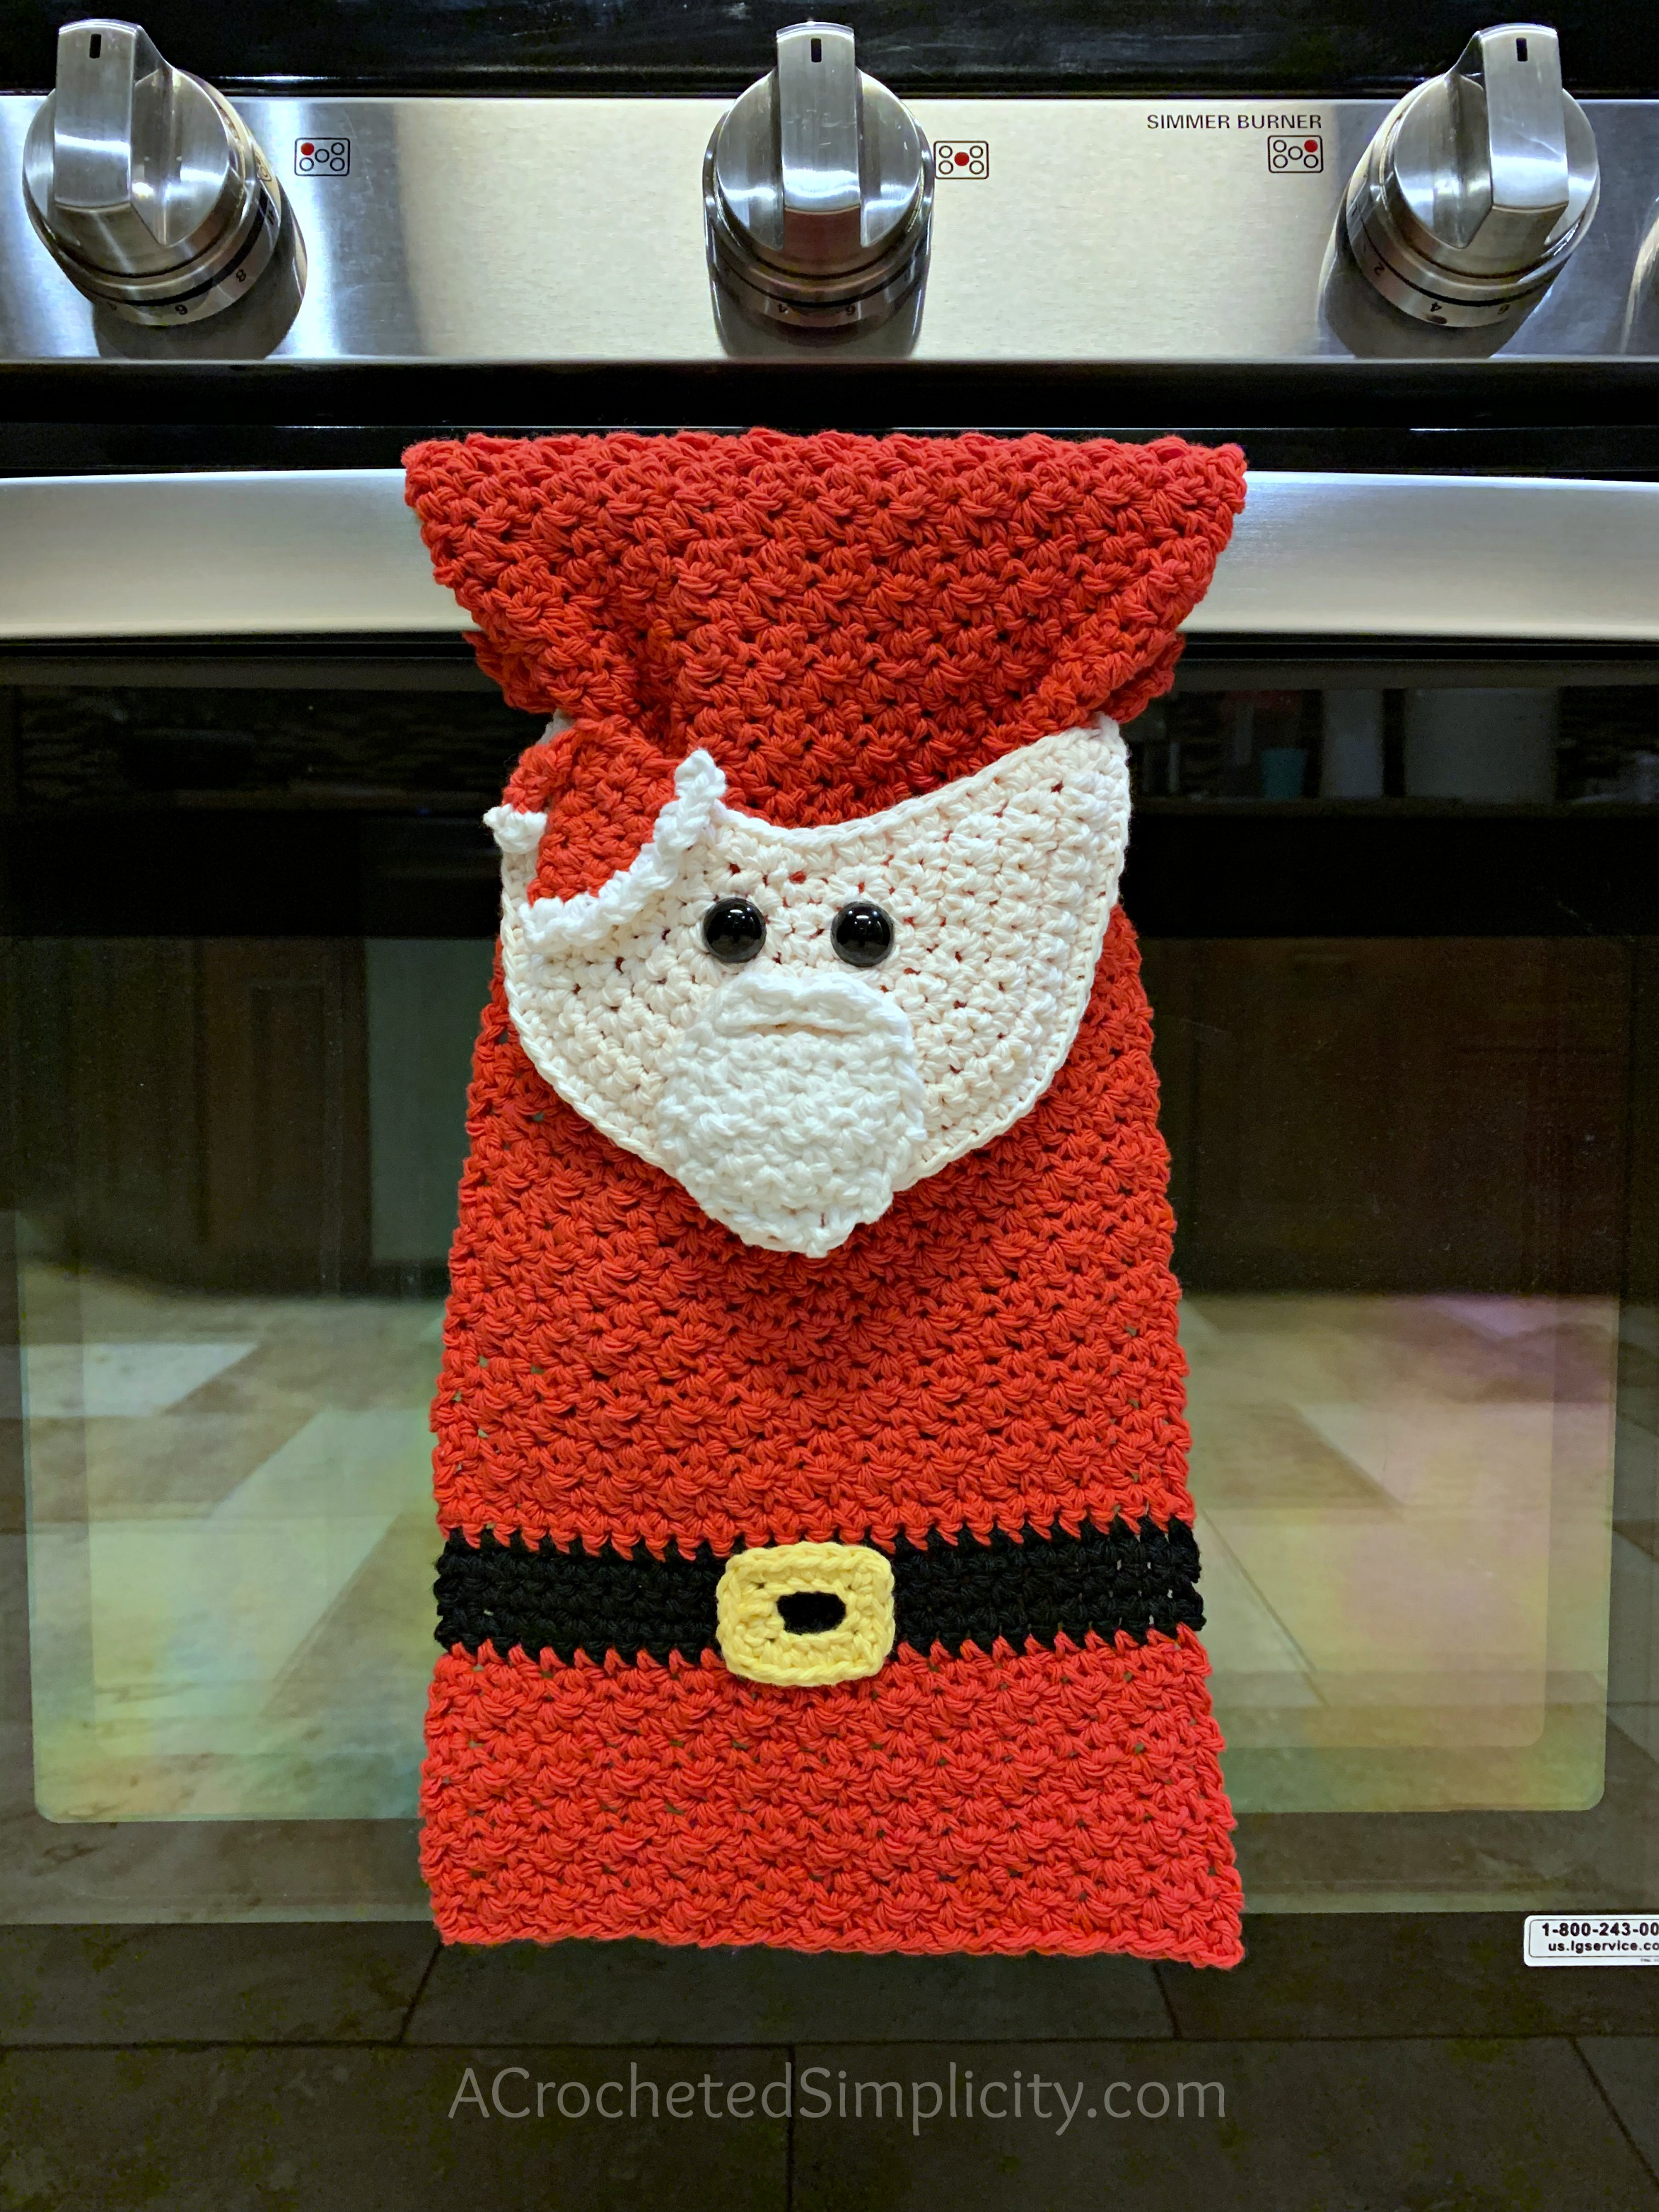 Santa Claus Kitchen Towel Free Crochet Towel Pattern A Crocheted Simplicity